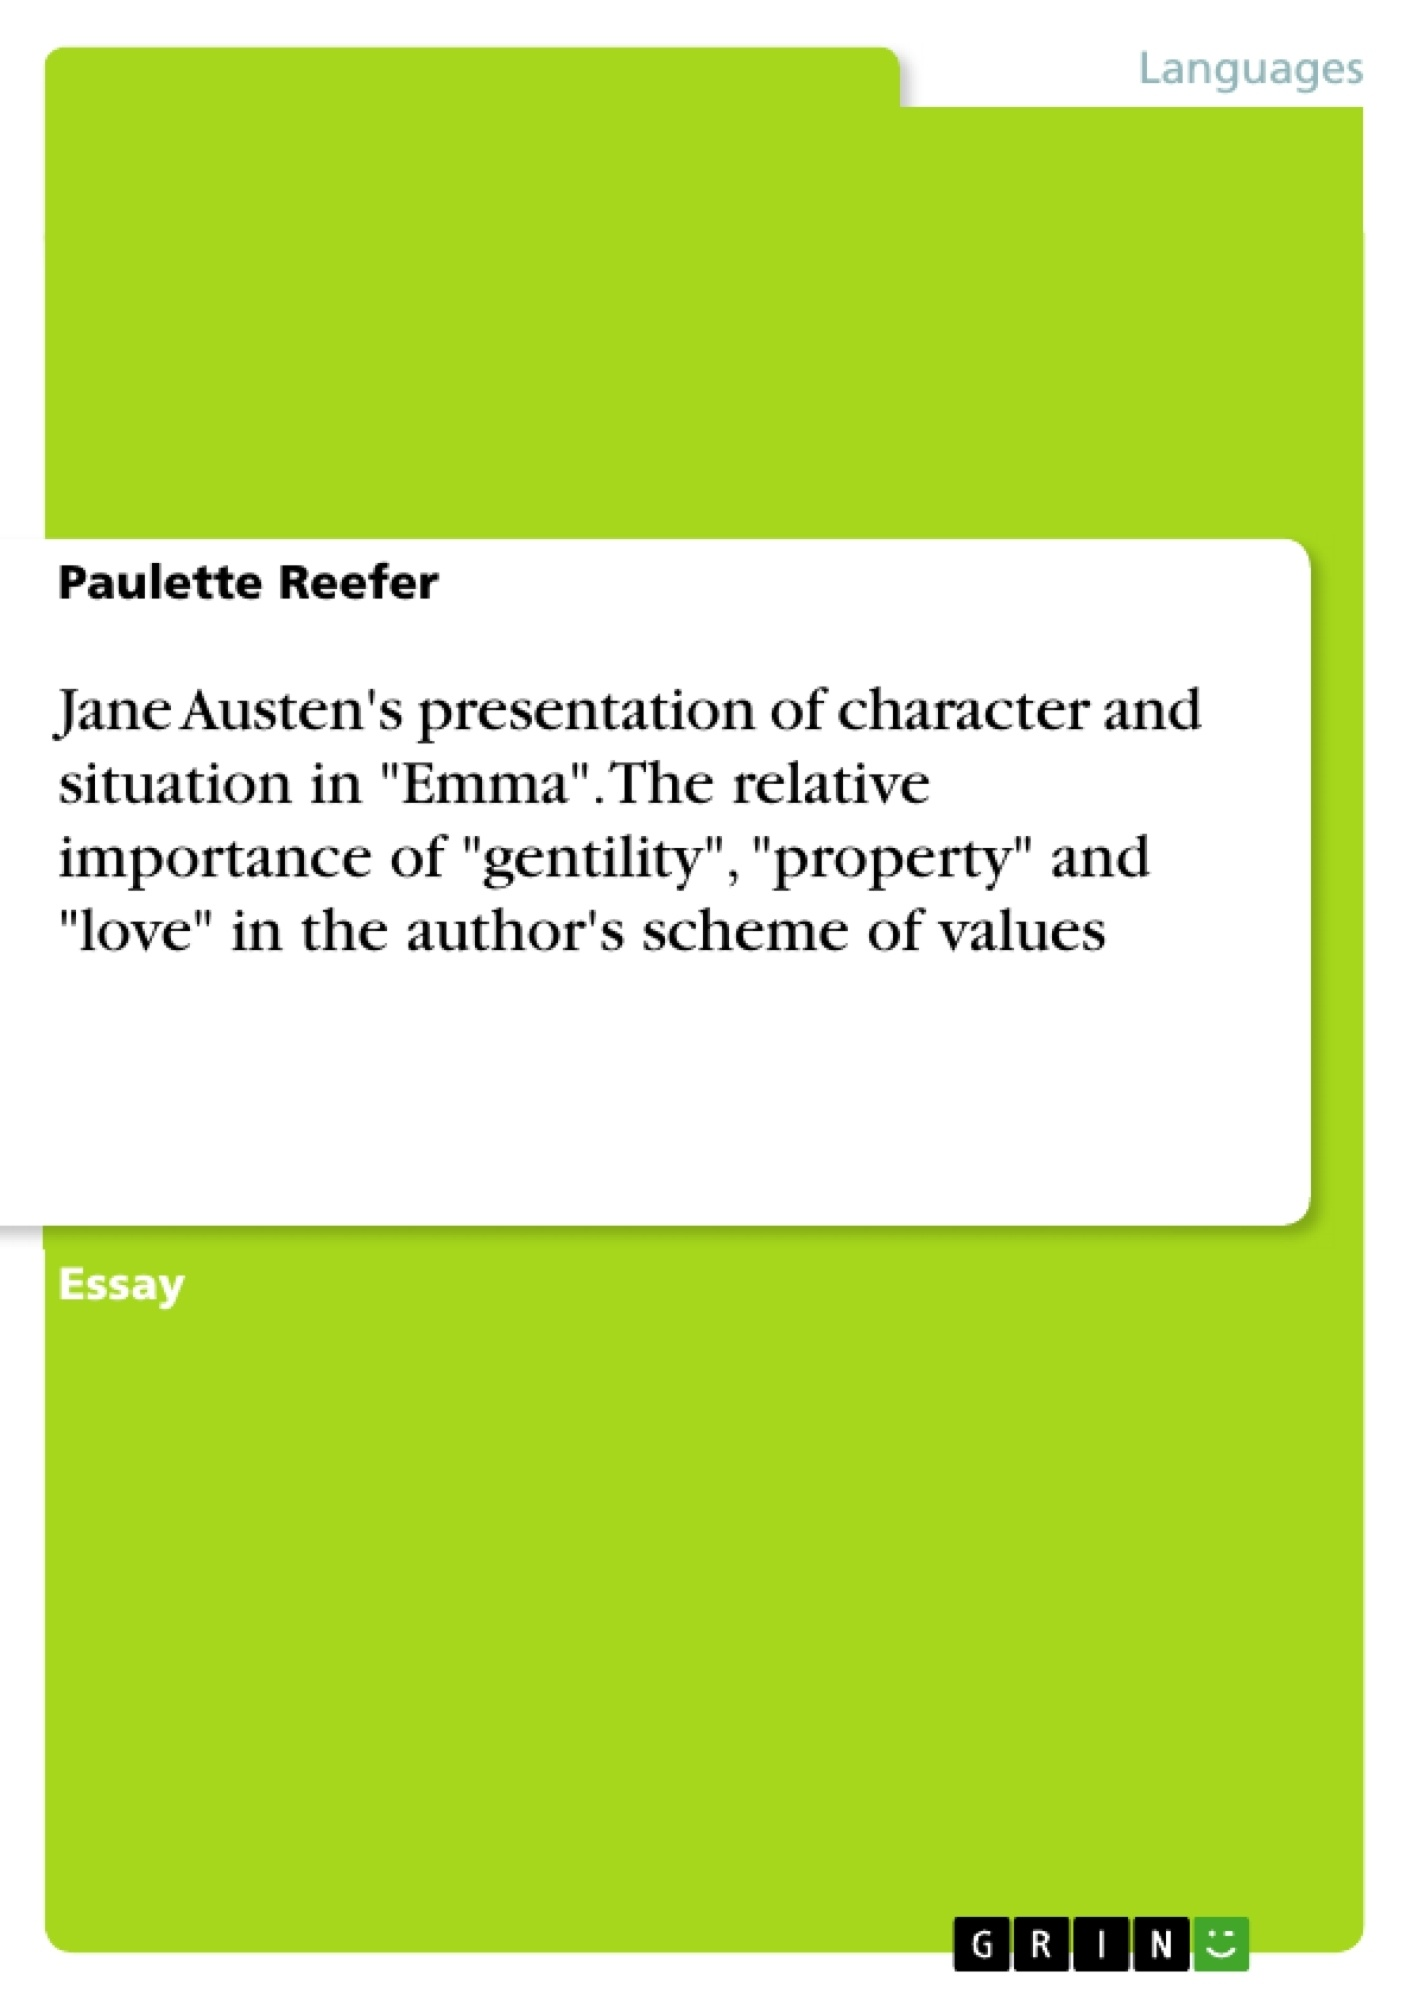 jane austen s presentation of character and situation in emma upload your own papers earn money and win an iphone 7